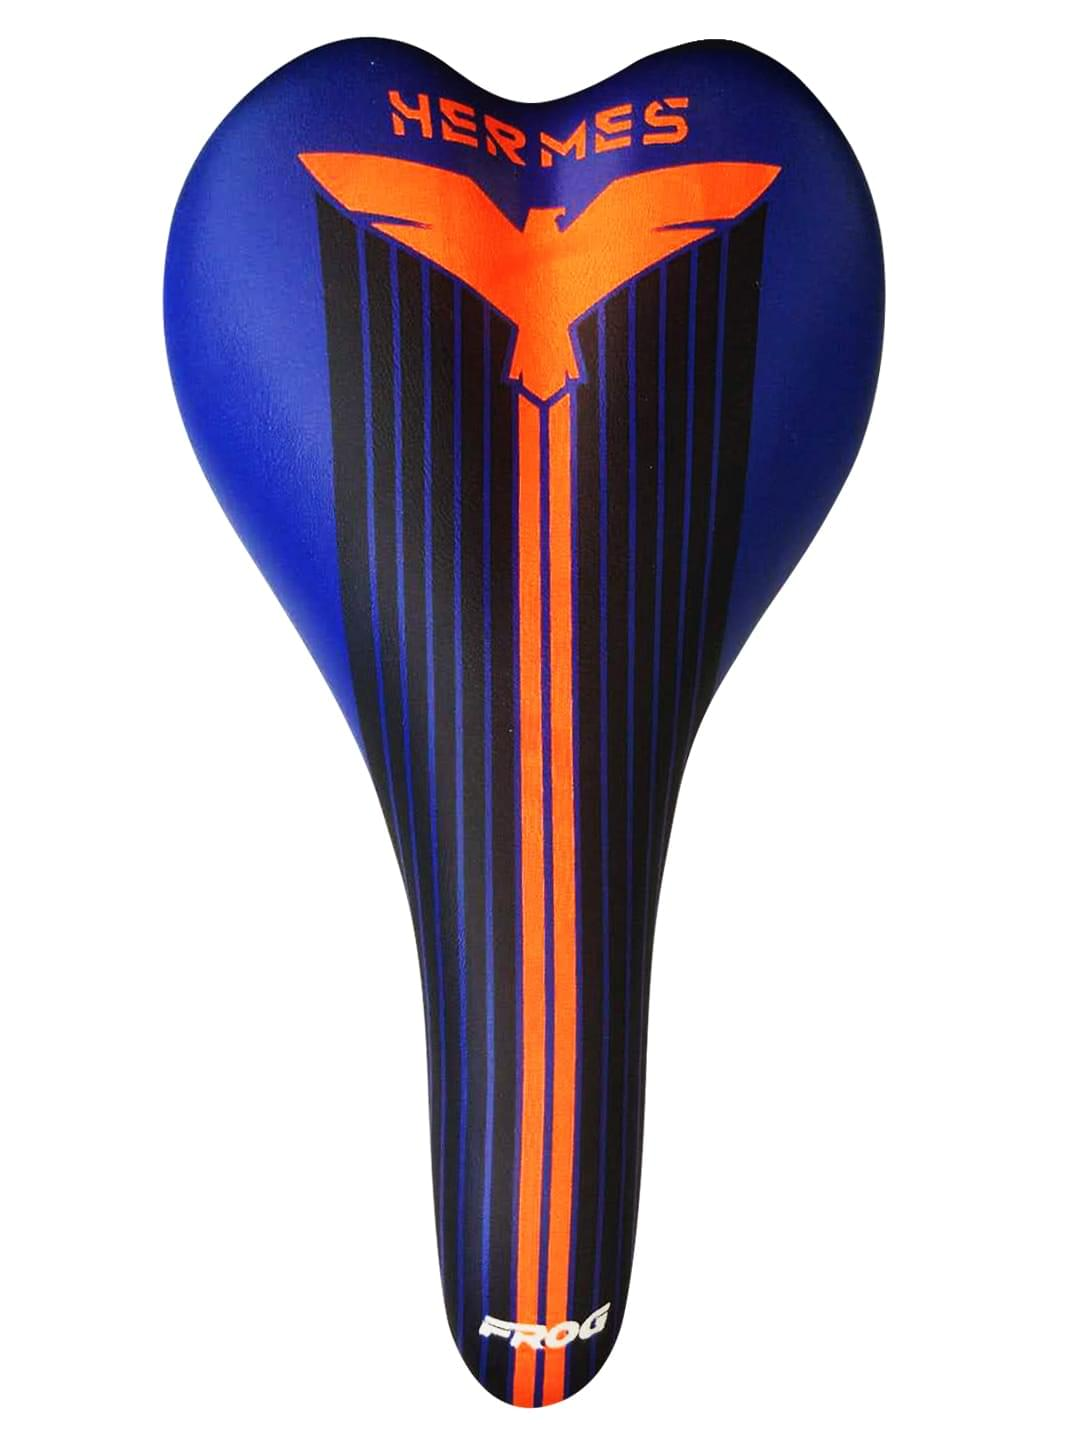 Hermes 26 Blue Orange (V-Brakes) image 5